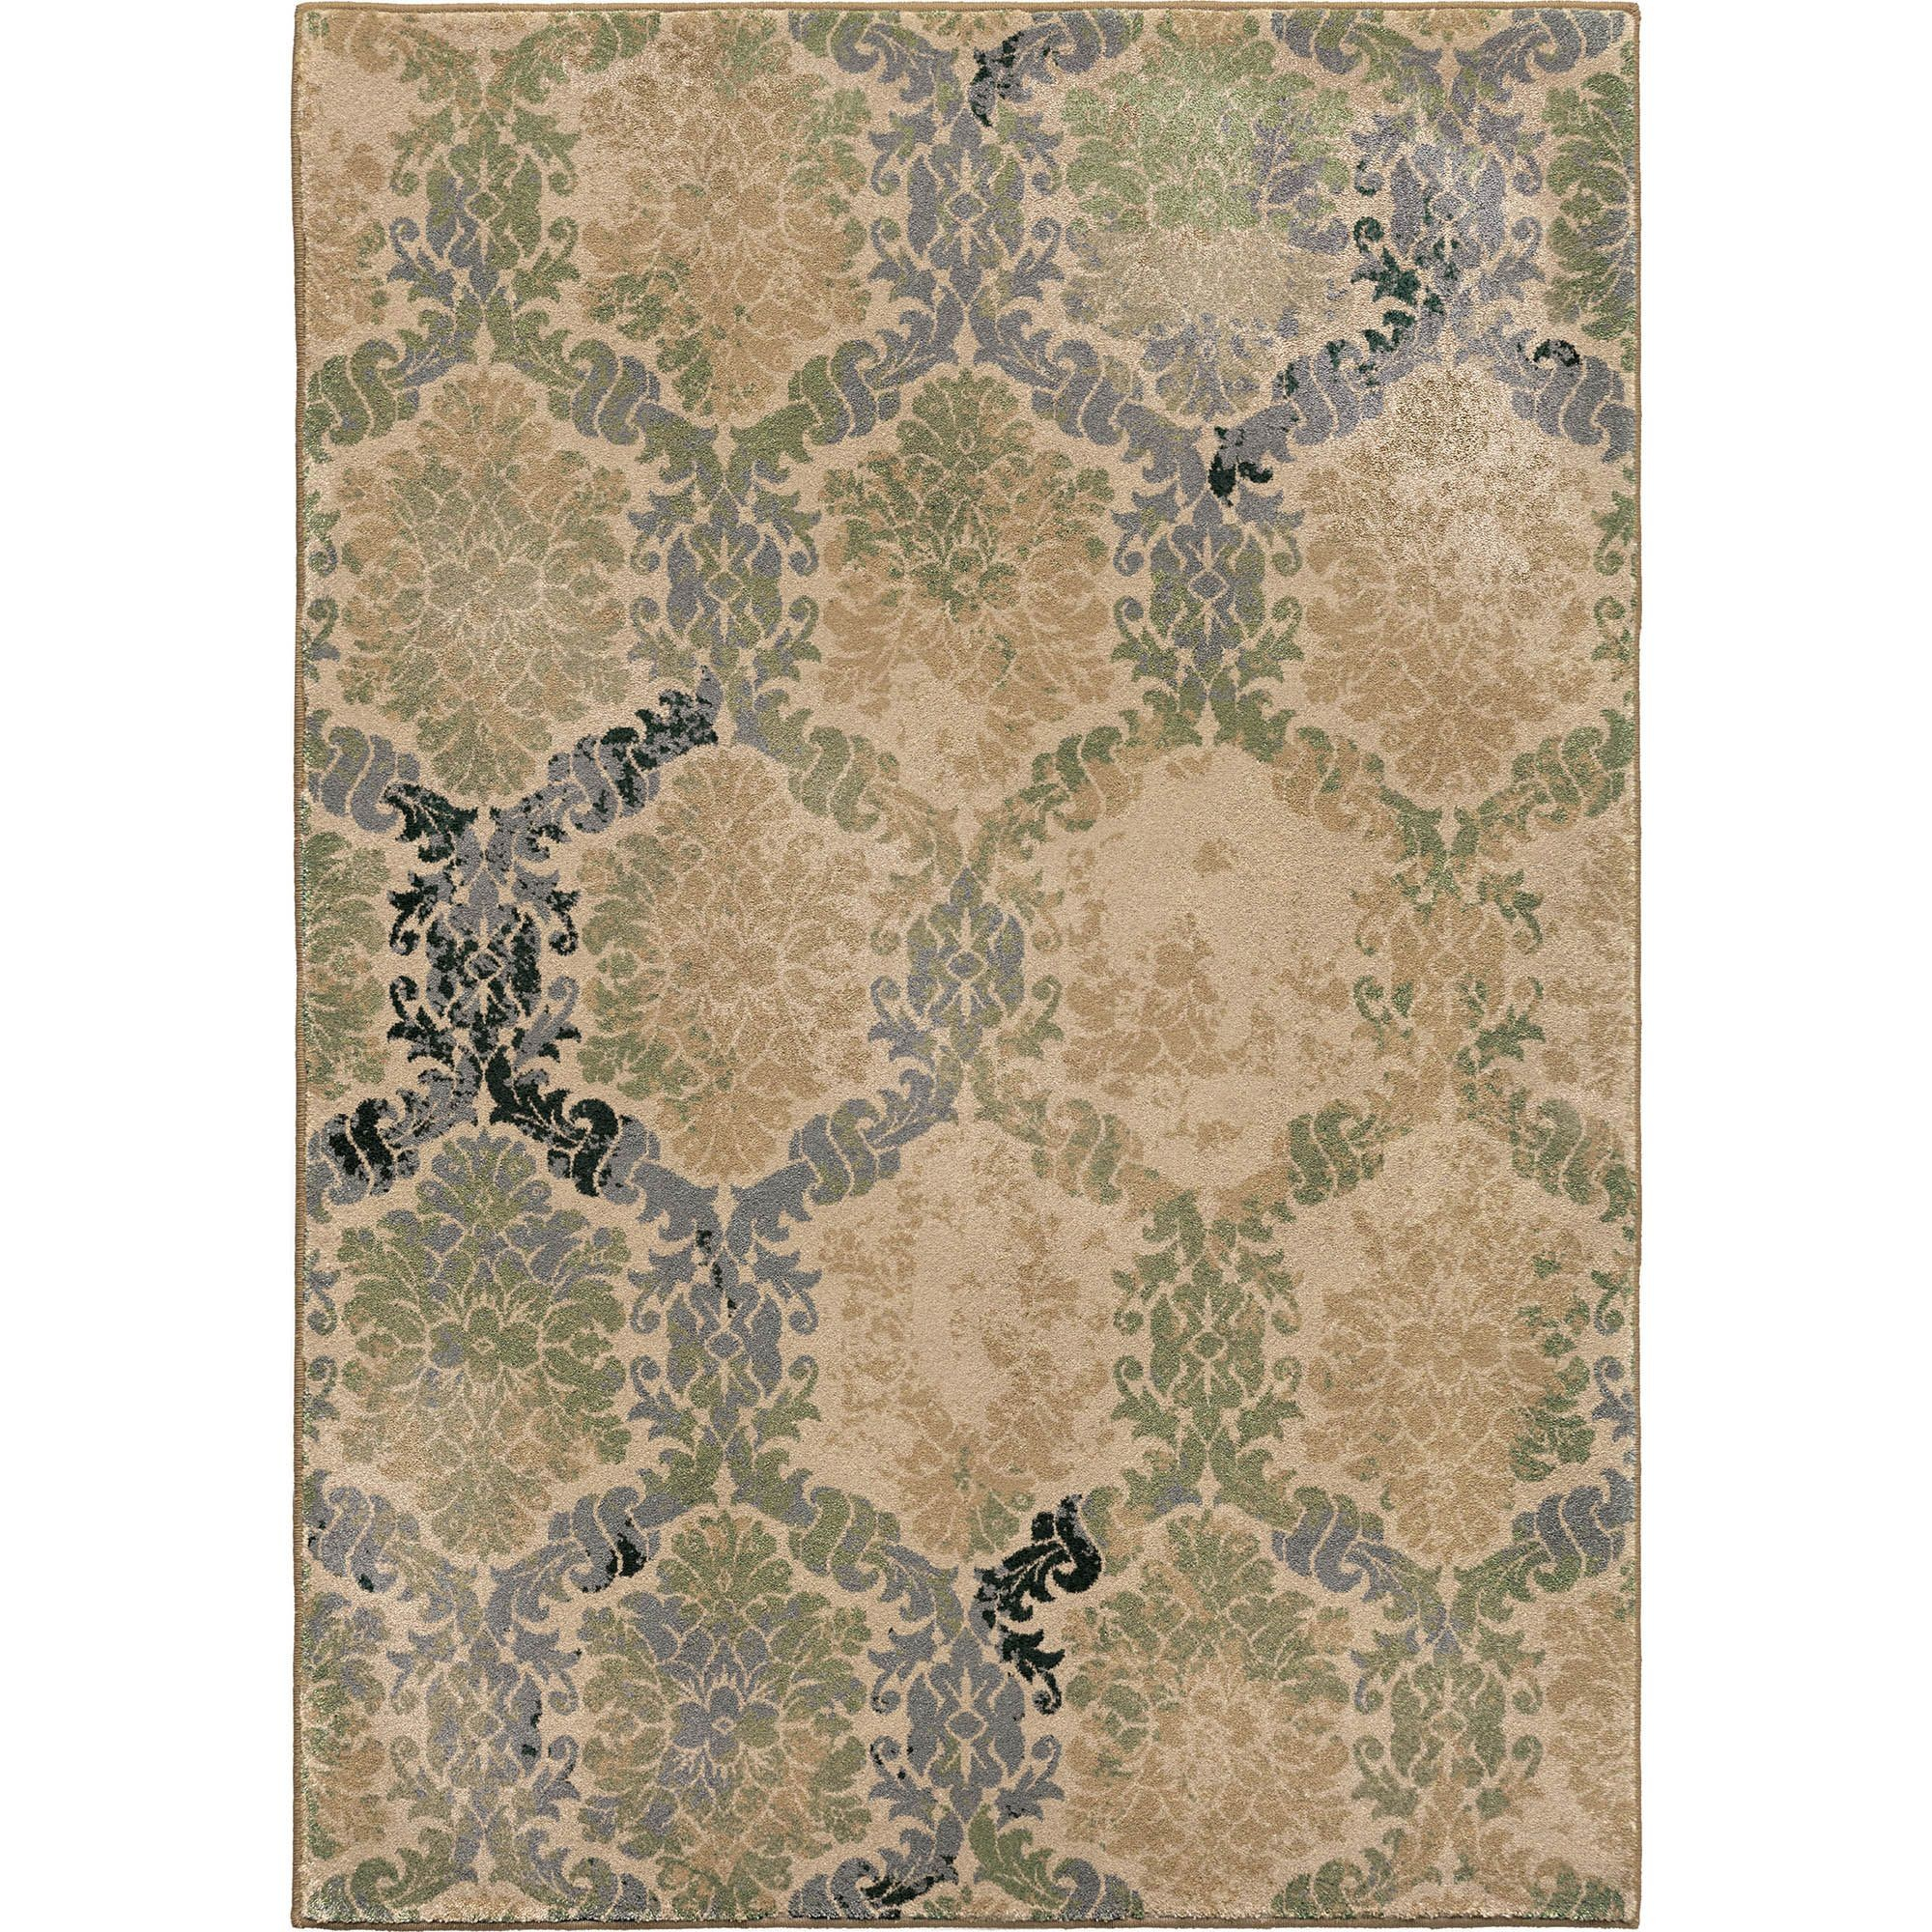 Oxfordburst Green Large Rug From Orian (3205 8x11